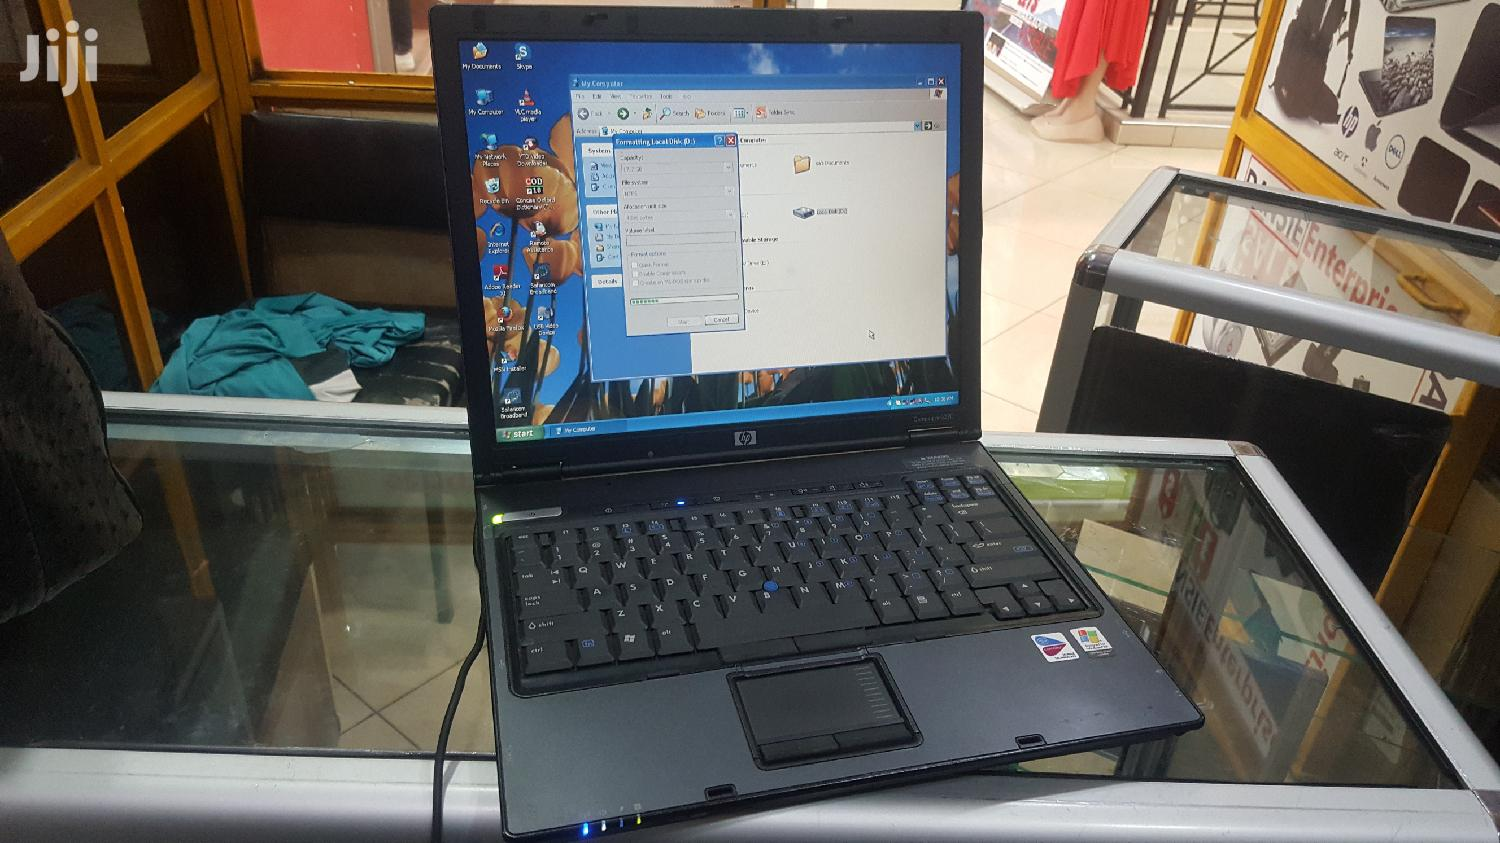 Laptop HP Compaq NC2400 1GB 40GB | Laptops & Computers for sale in Nairobi Central, Nairobi, Kenya